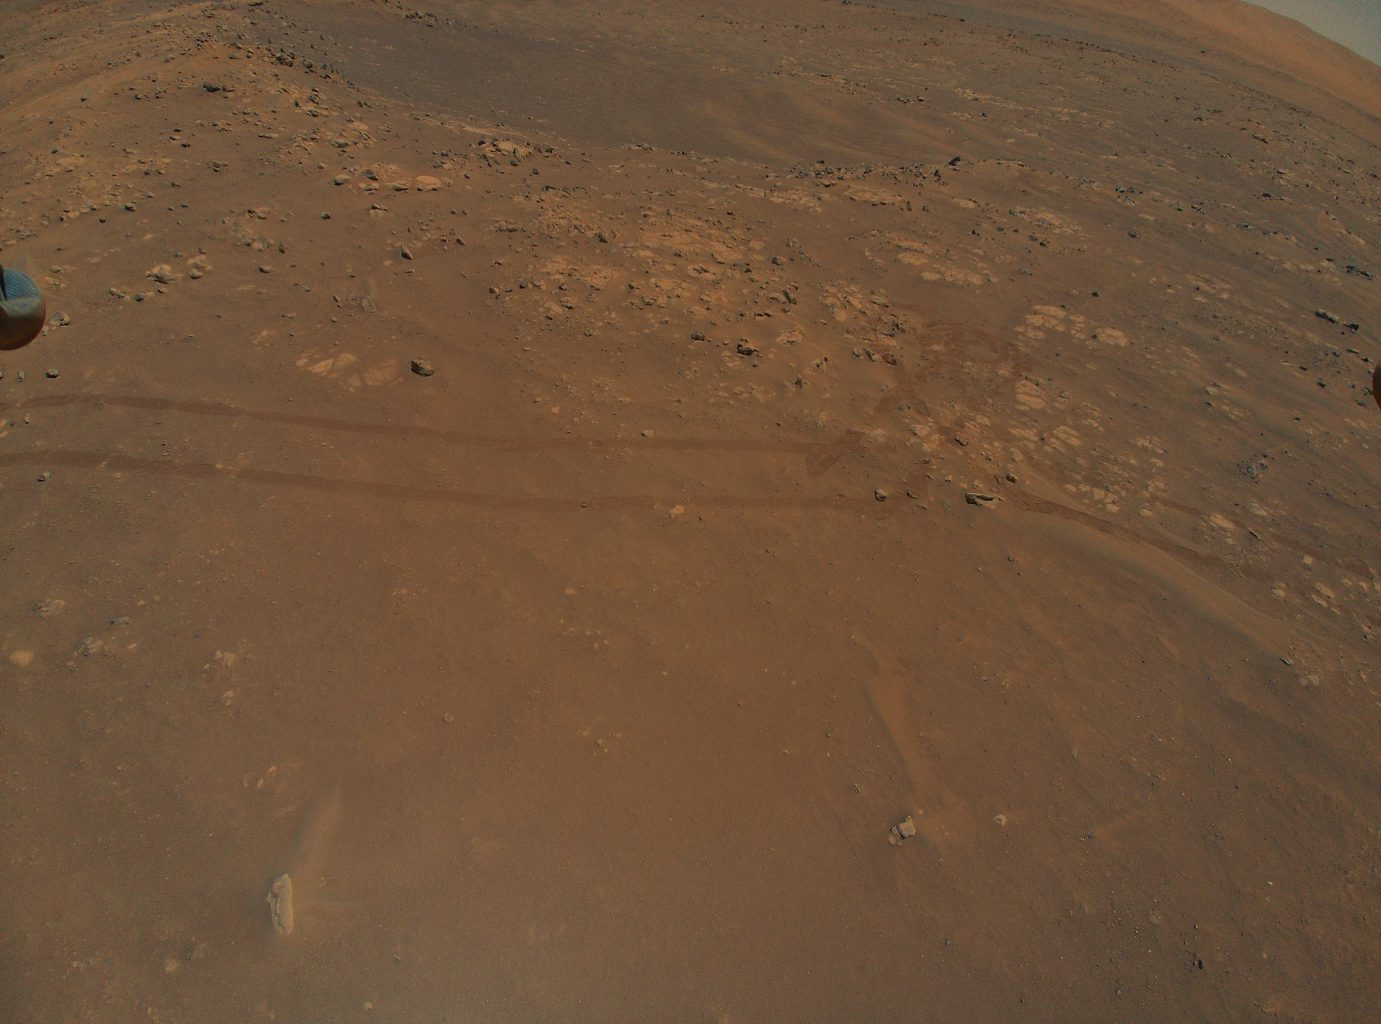 Rover tracks from the Perseverance rover captured during the ninth flight of the Ingenuity Mars Helicopter. Credit: NASA/JPL-Caltech